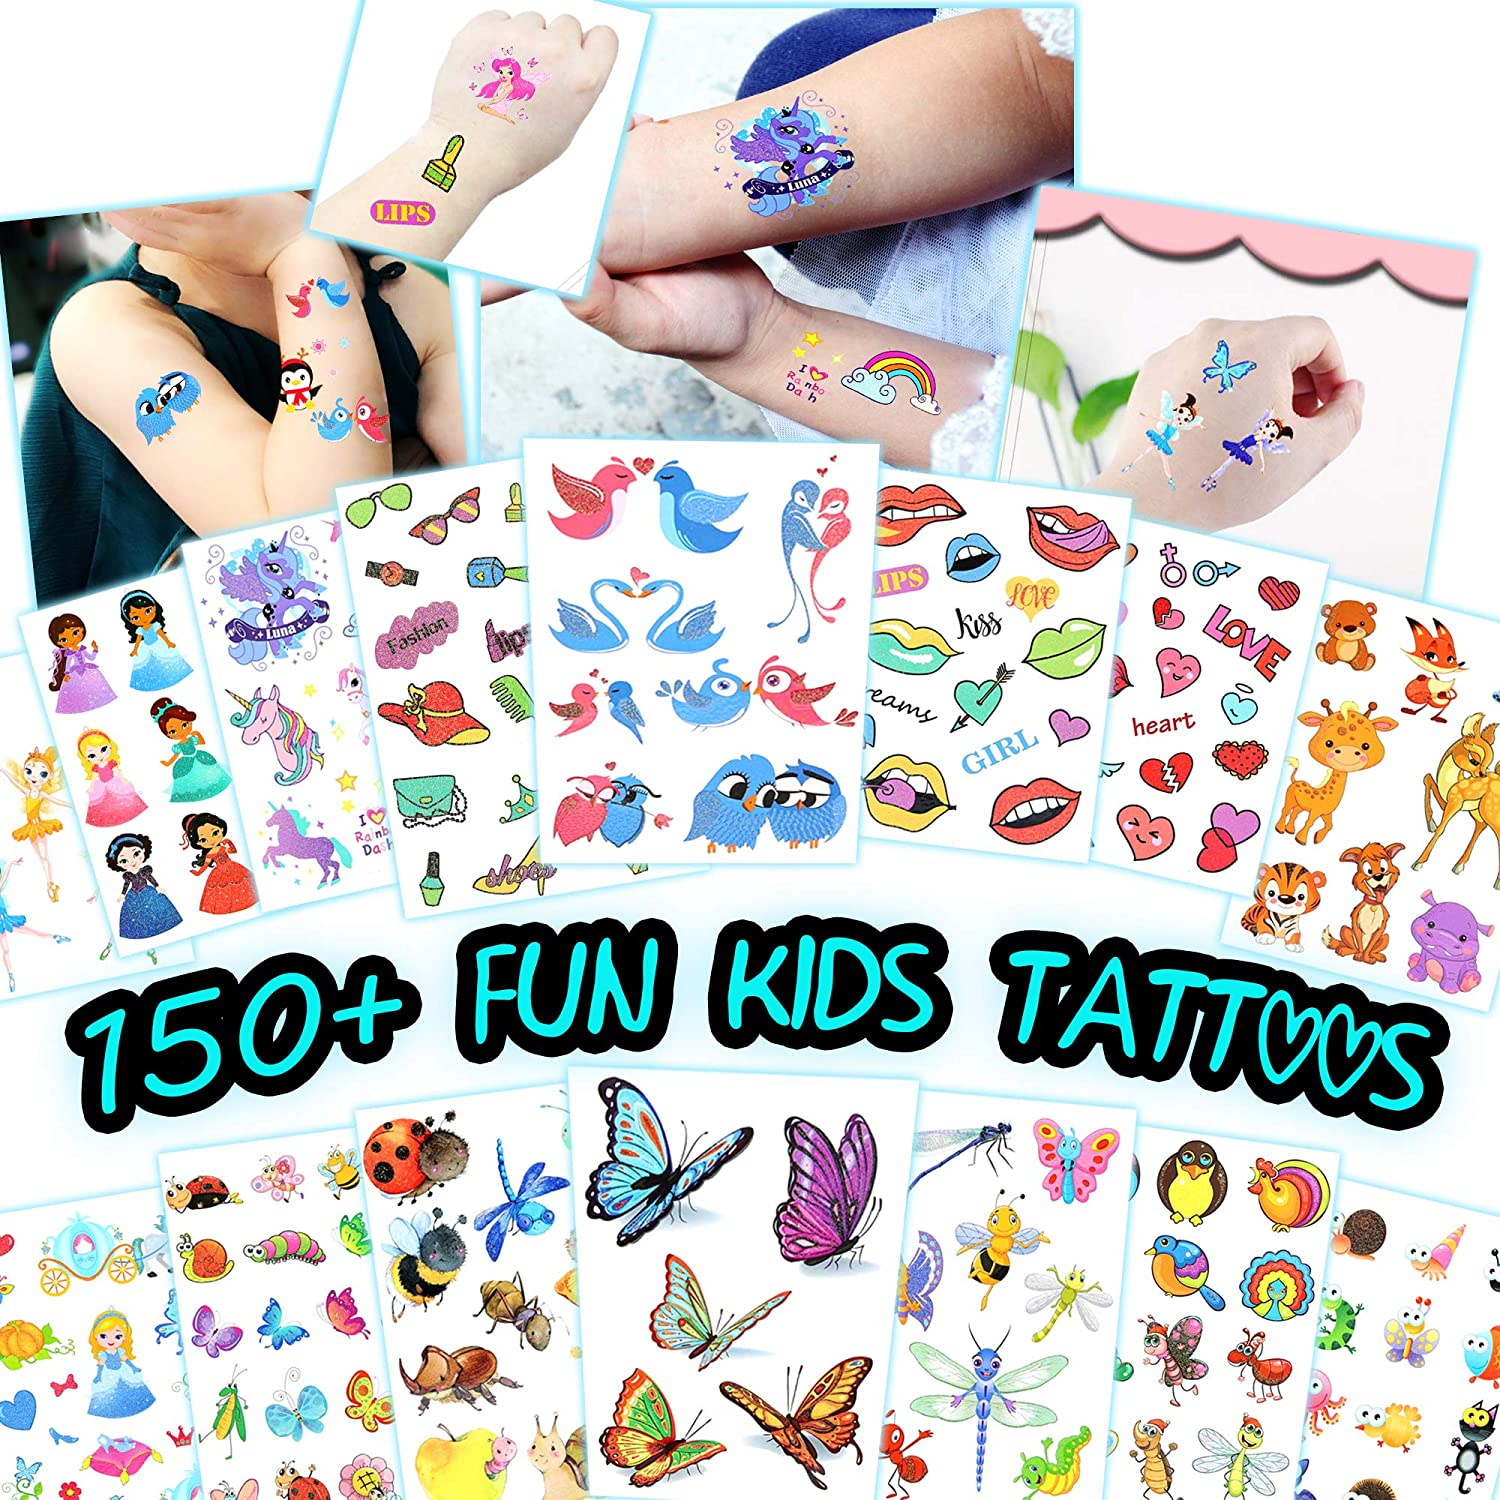 Amazon Com 150 Fun Kids Temporary Tattoos Easy To Use Tattoos For Children Bulk Assorted Designs Waterproof Body Art 15 Sheets Health Personal Care